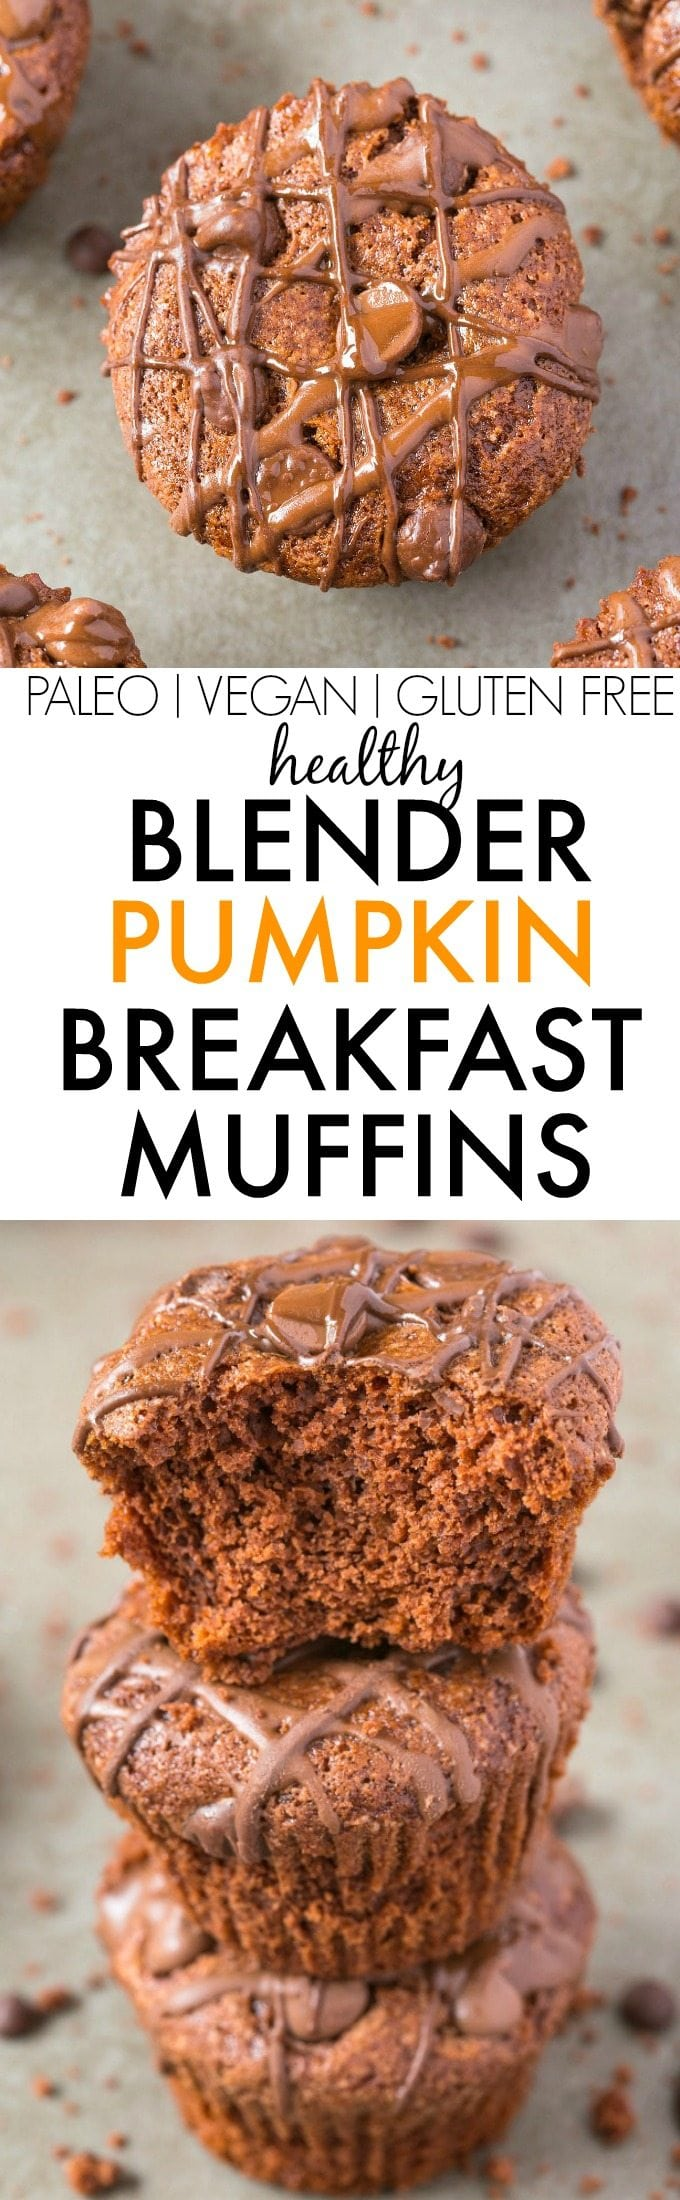 Healthy BLENDER Pumpkin Breakfast Muffins made with NO butter, oil, flour or sugar but you'd never tell- Freezer friendly, Easy AND delicious! The perfect snack or dessert too! {vegan, gluten free, flourless, paleo recipe}- thebigmansworld.com